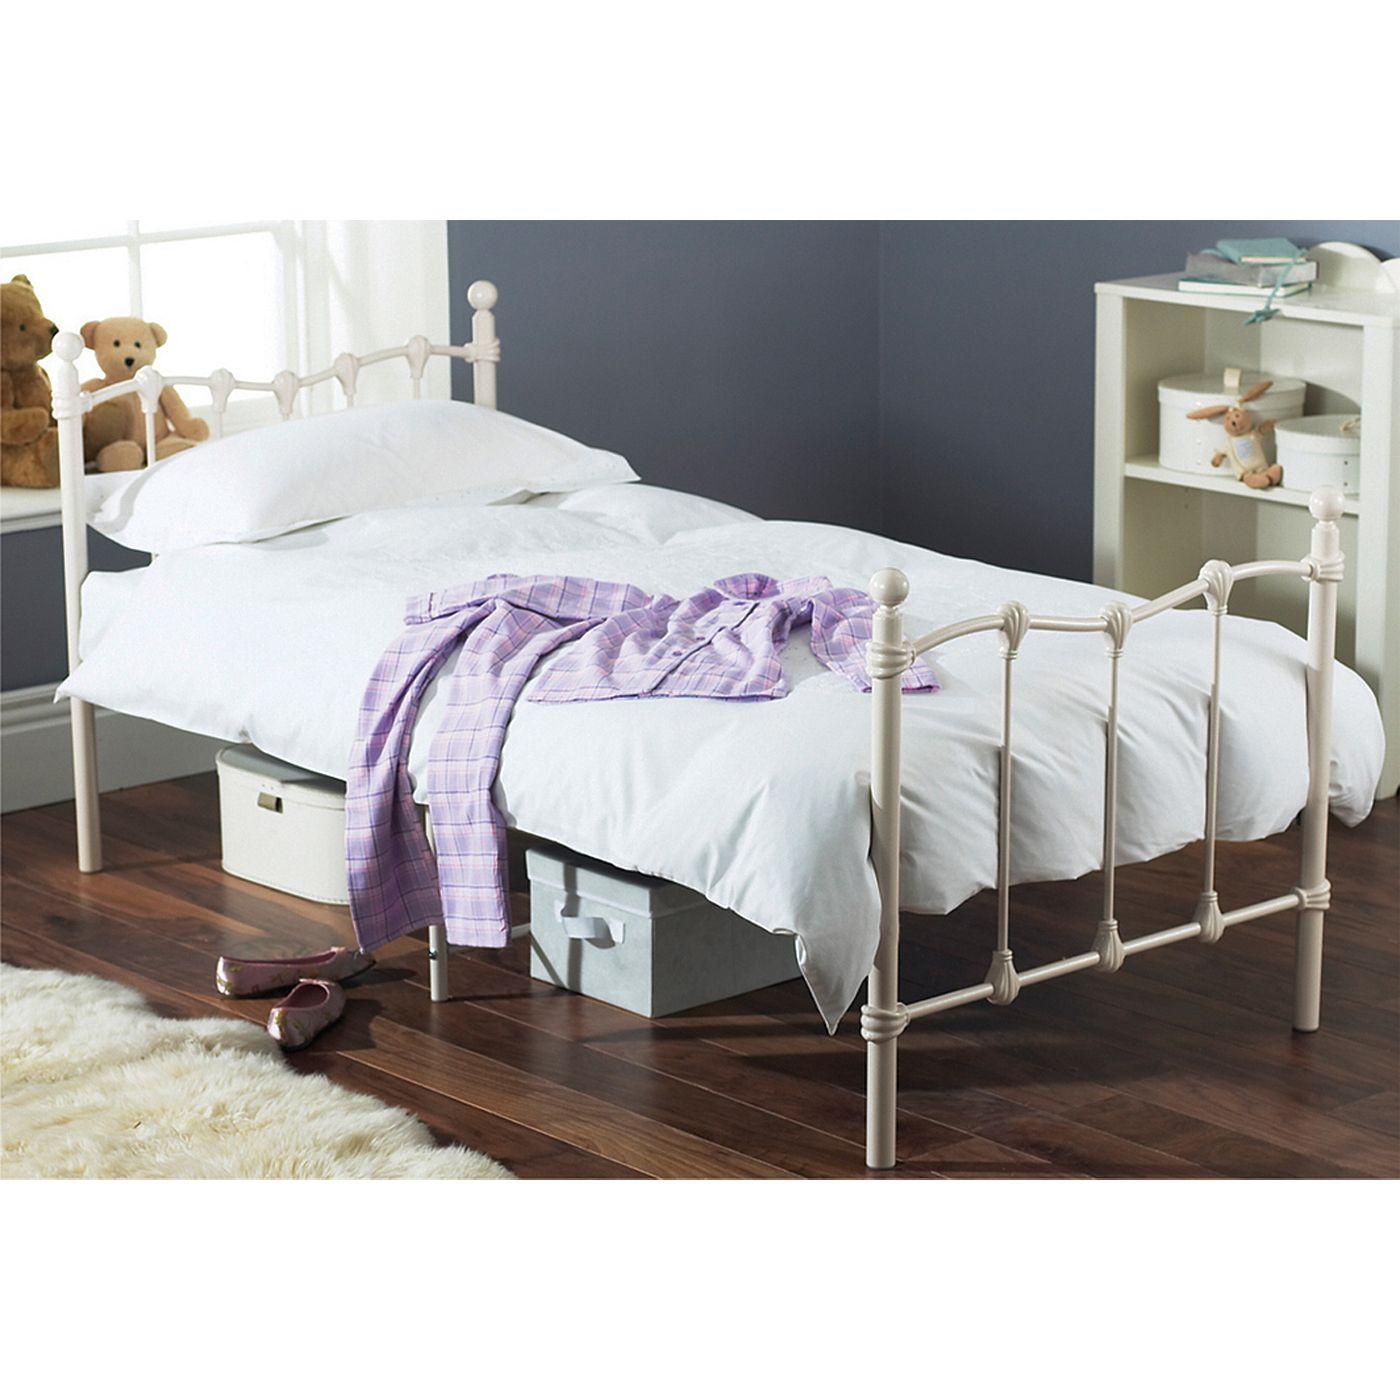 Darcey Single Bed Frame  Cream - Furniture - Asda